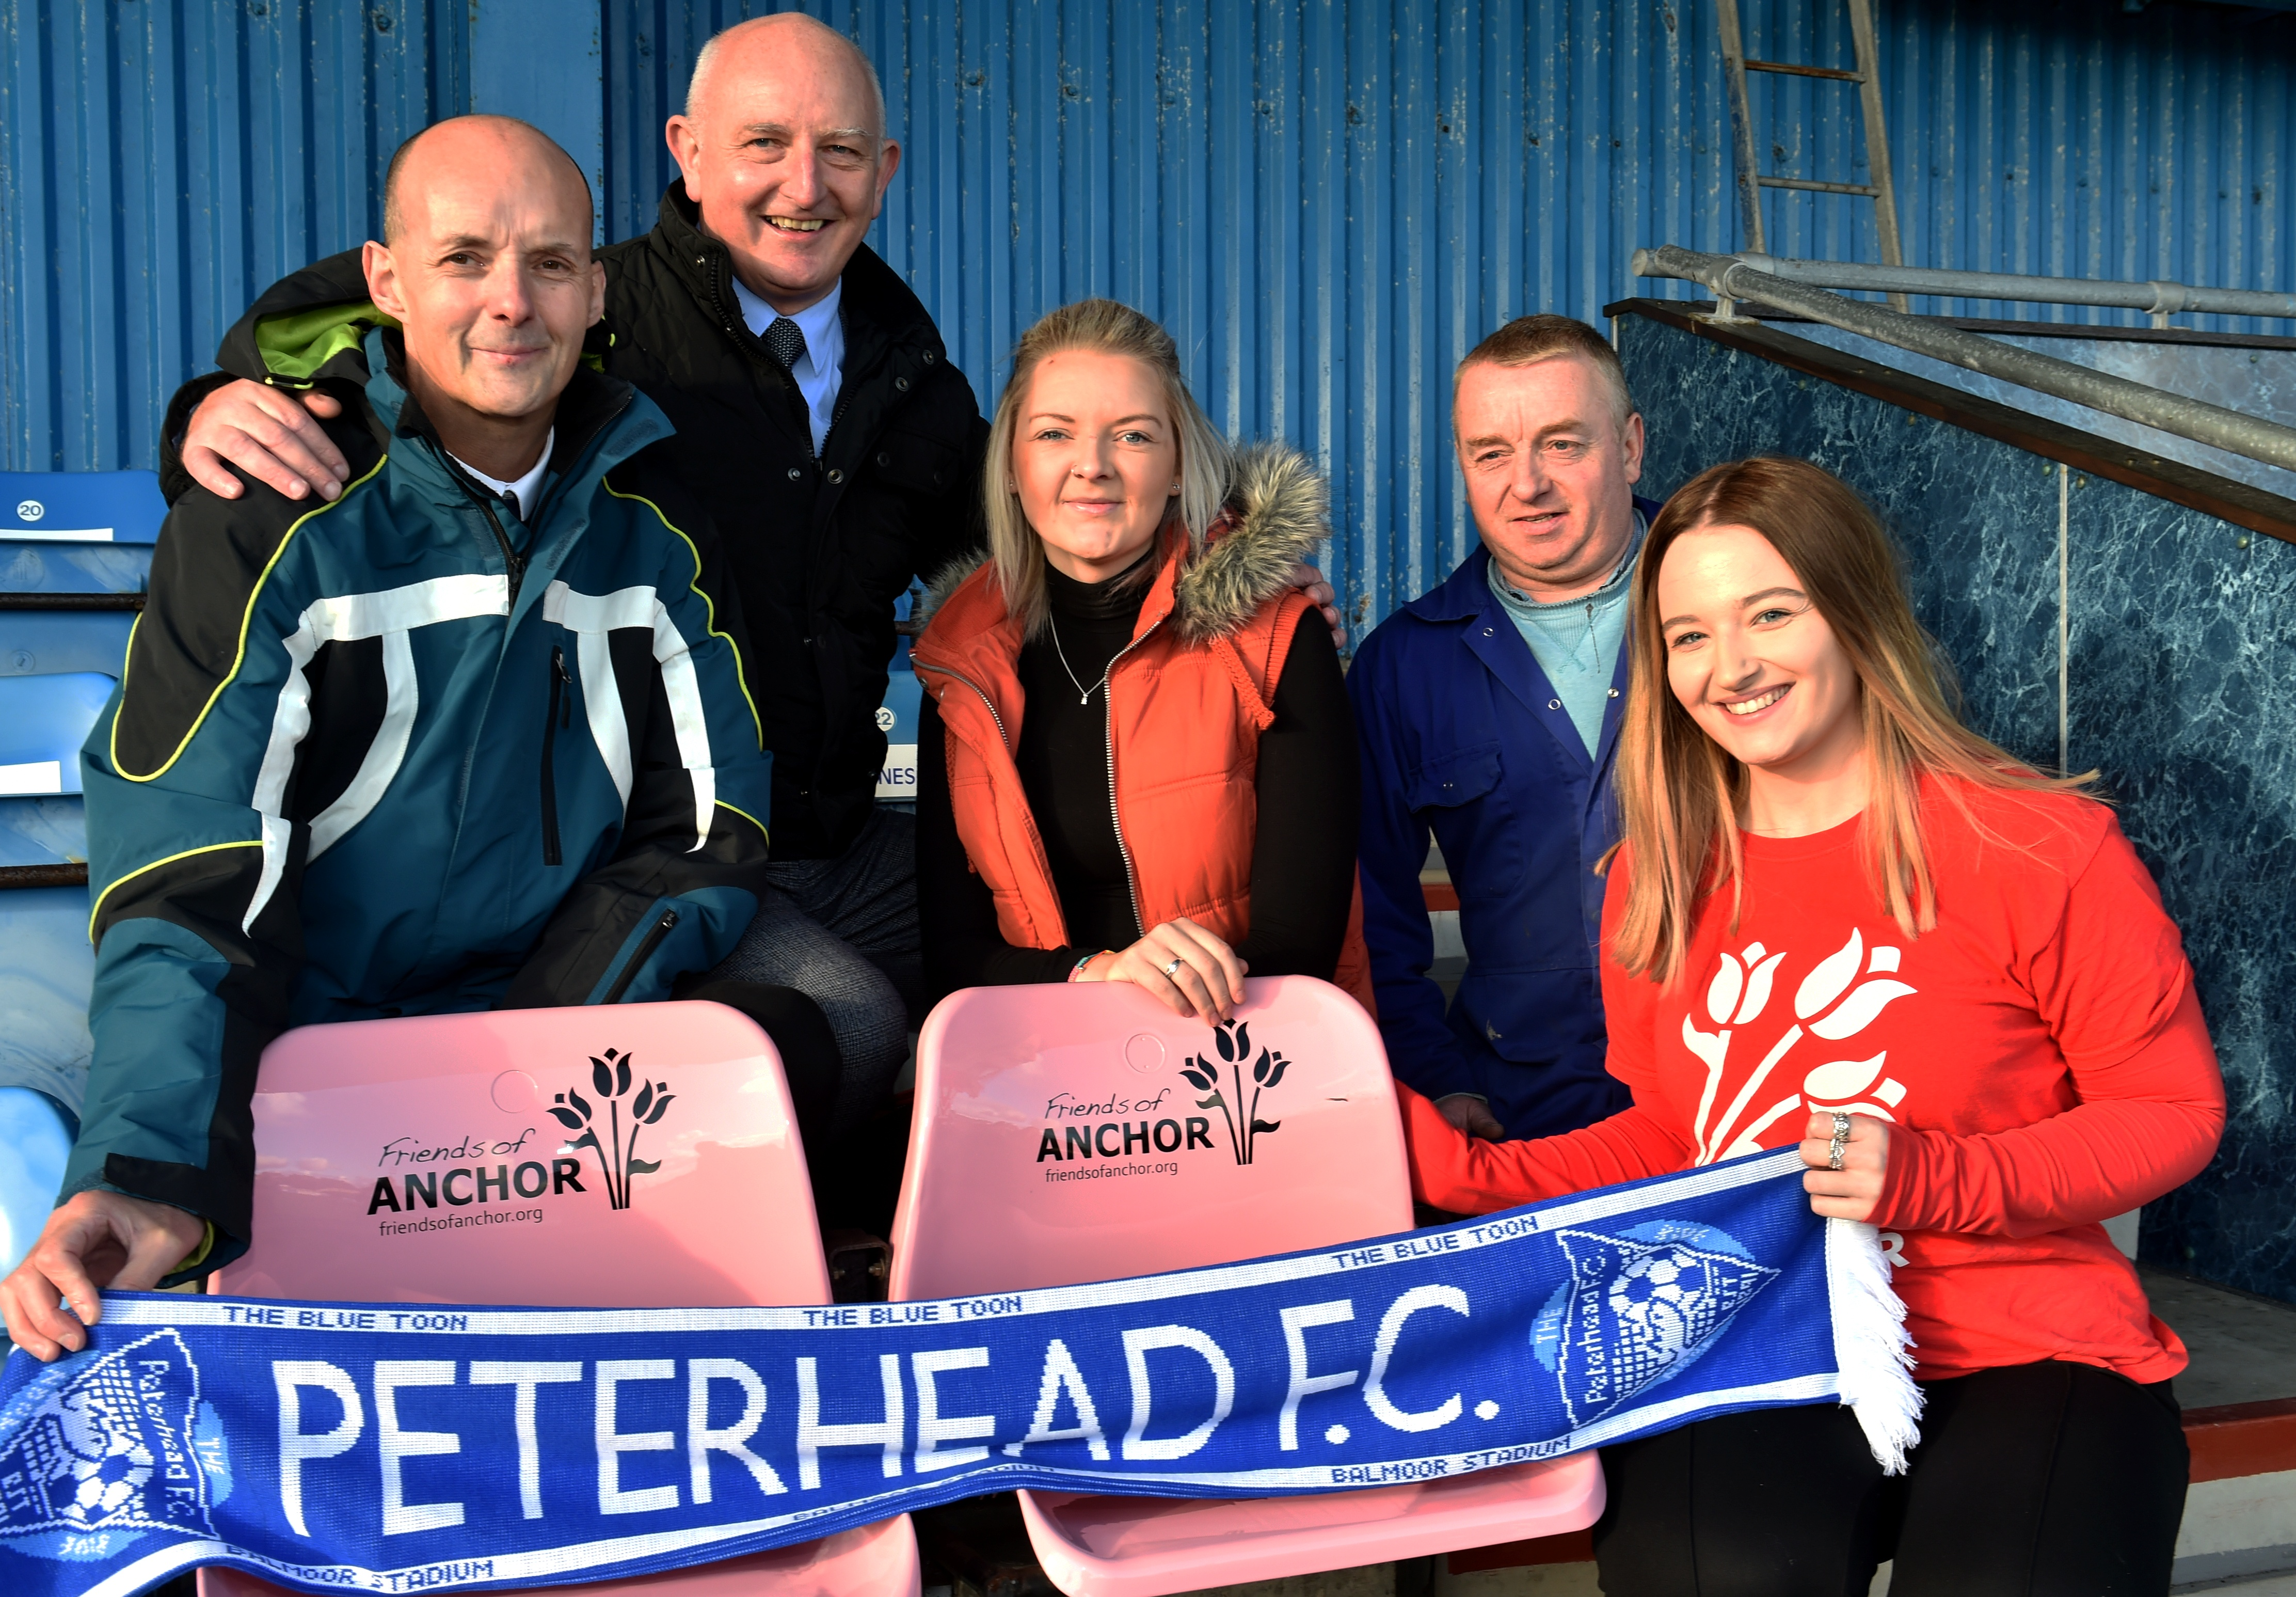 From left: Sonny Milne, Peterhead General Manager Martin Johnston, Louise Milne, Neil Daniel (who painted the seats) and Friends of Anchor Naomi Forrest. Picture by COLIN RENNIE